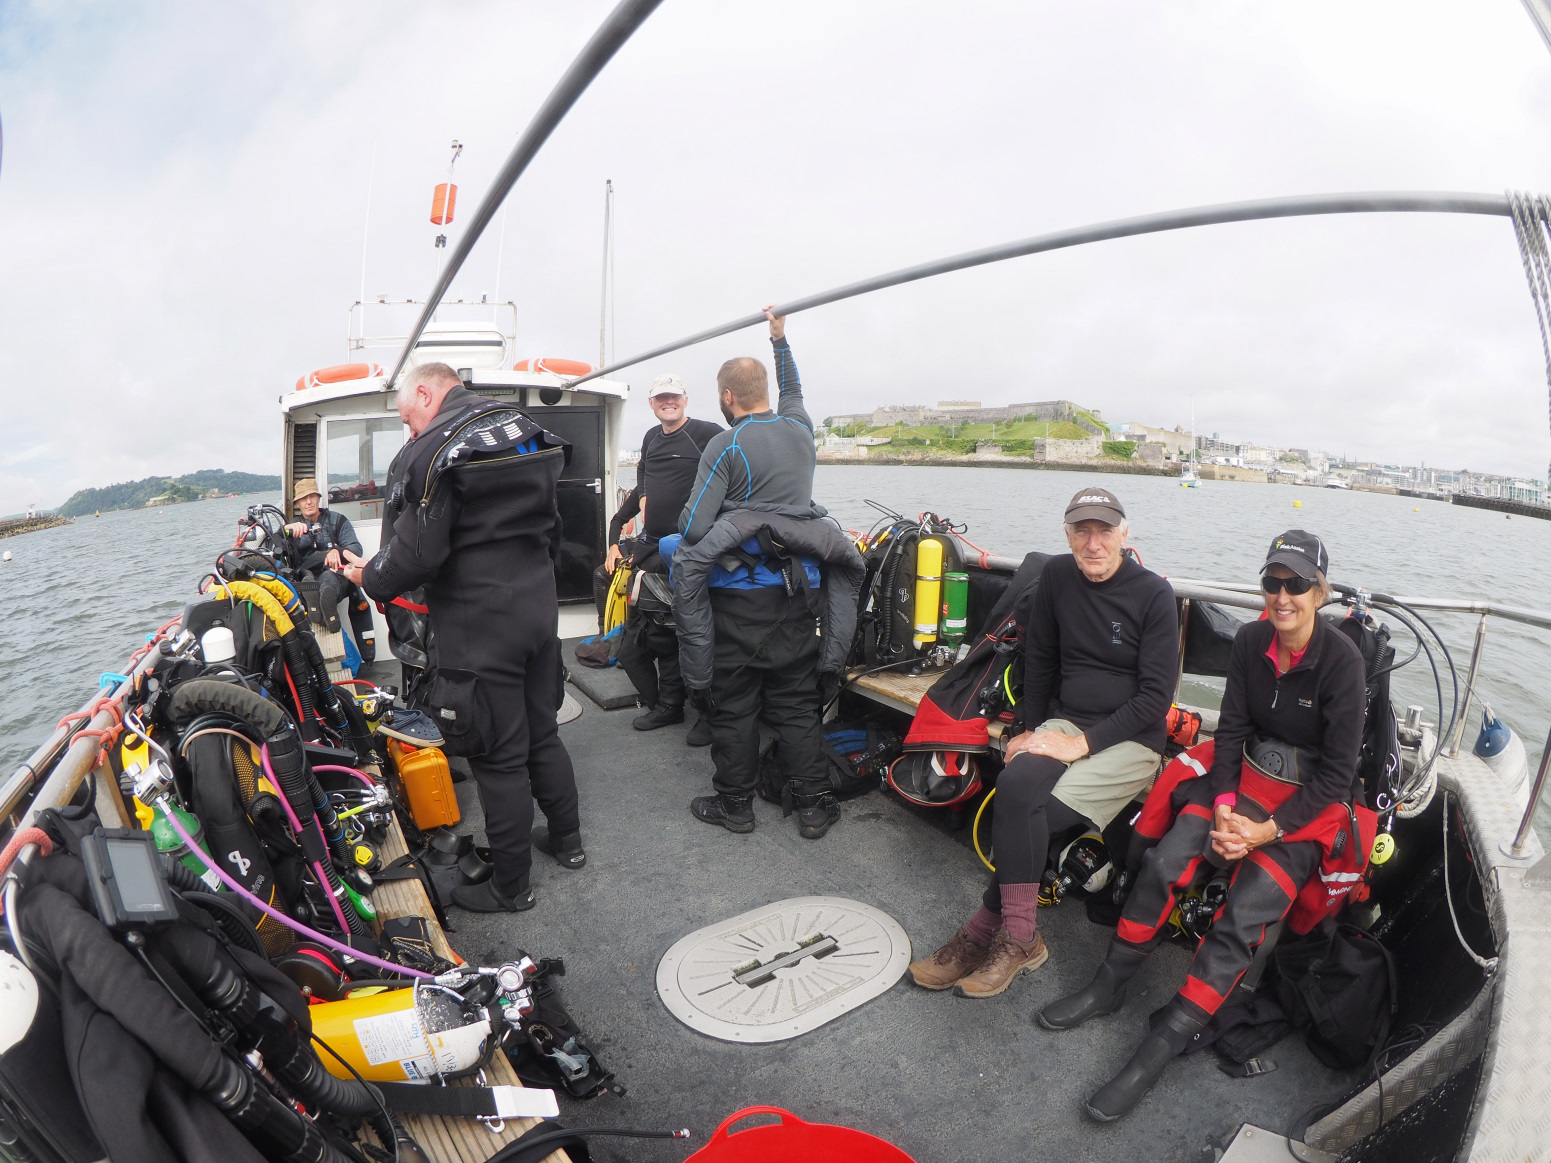 Divers sitting on the boat